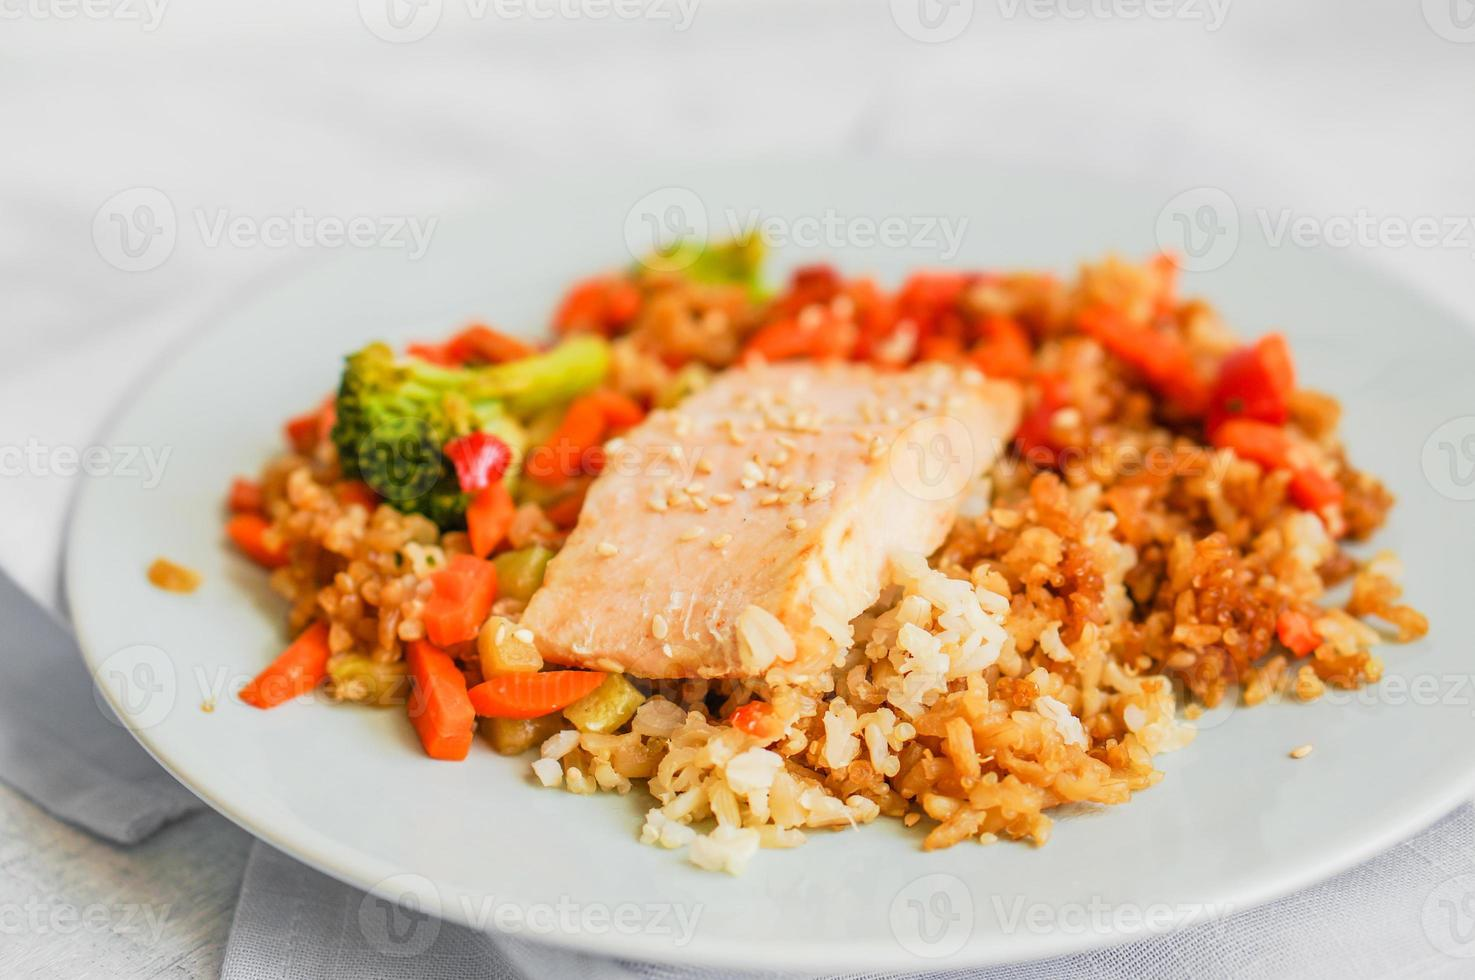 Grilled salmon with quinoa and vegetables photo